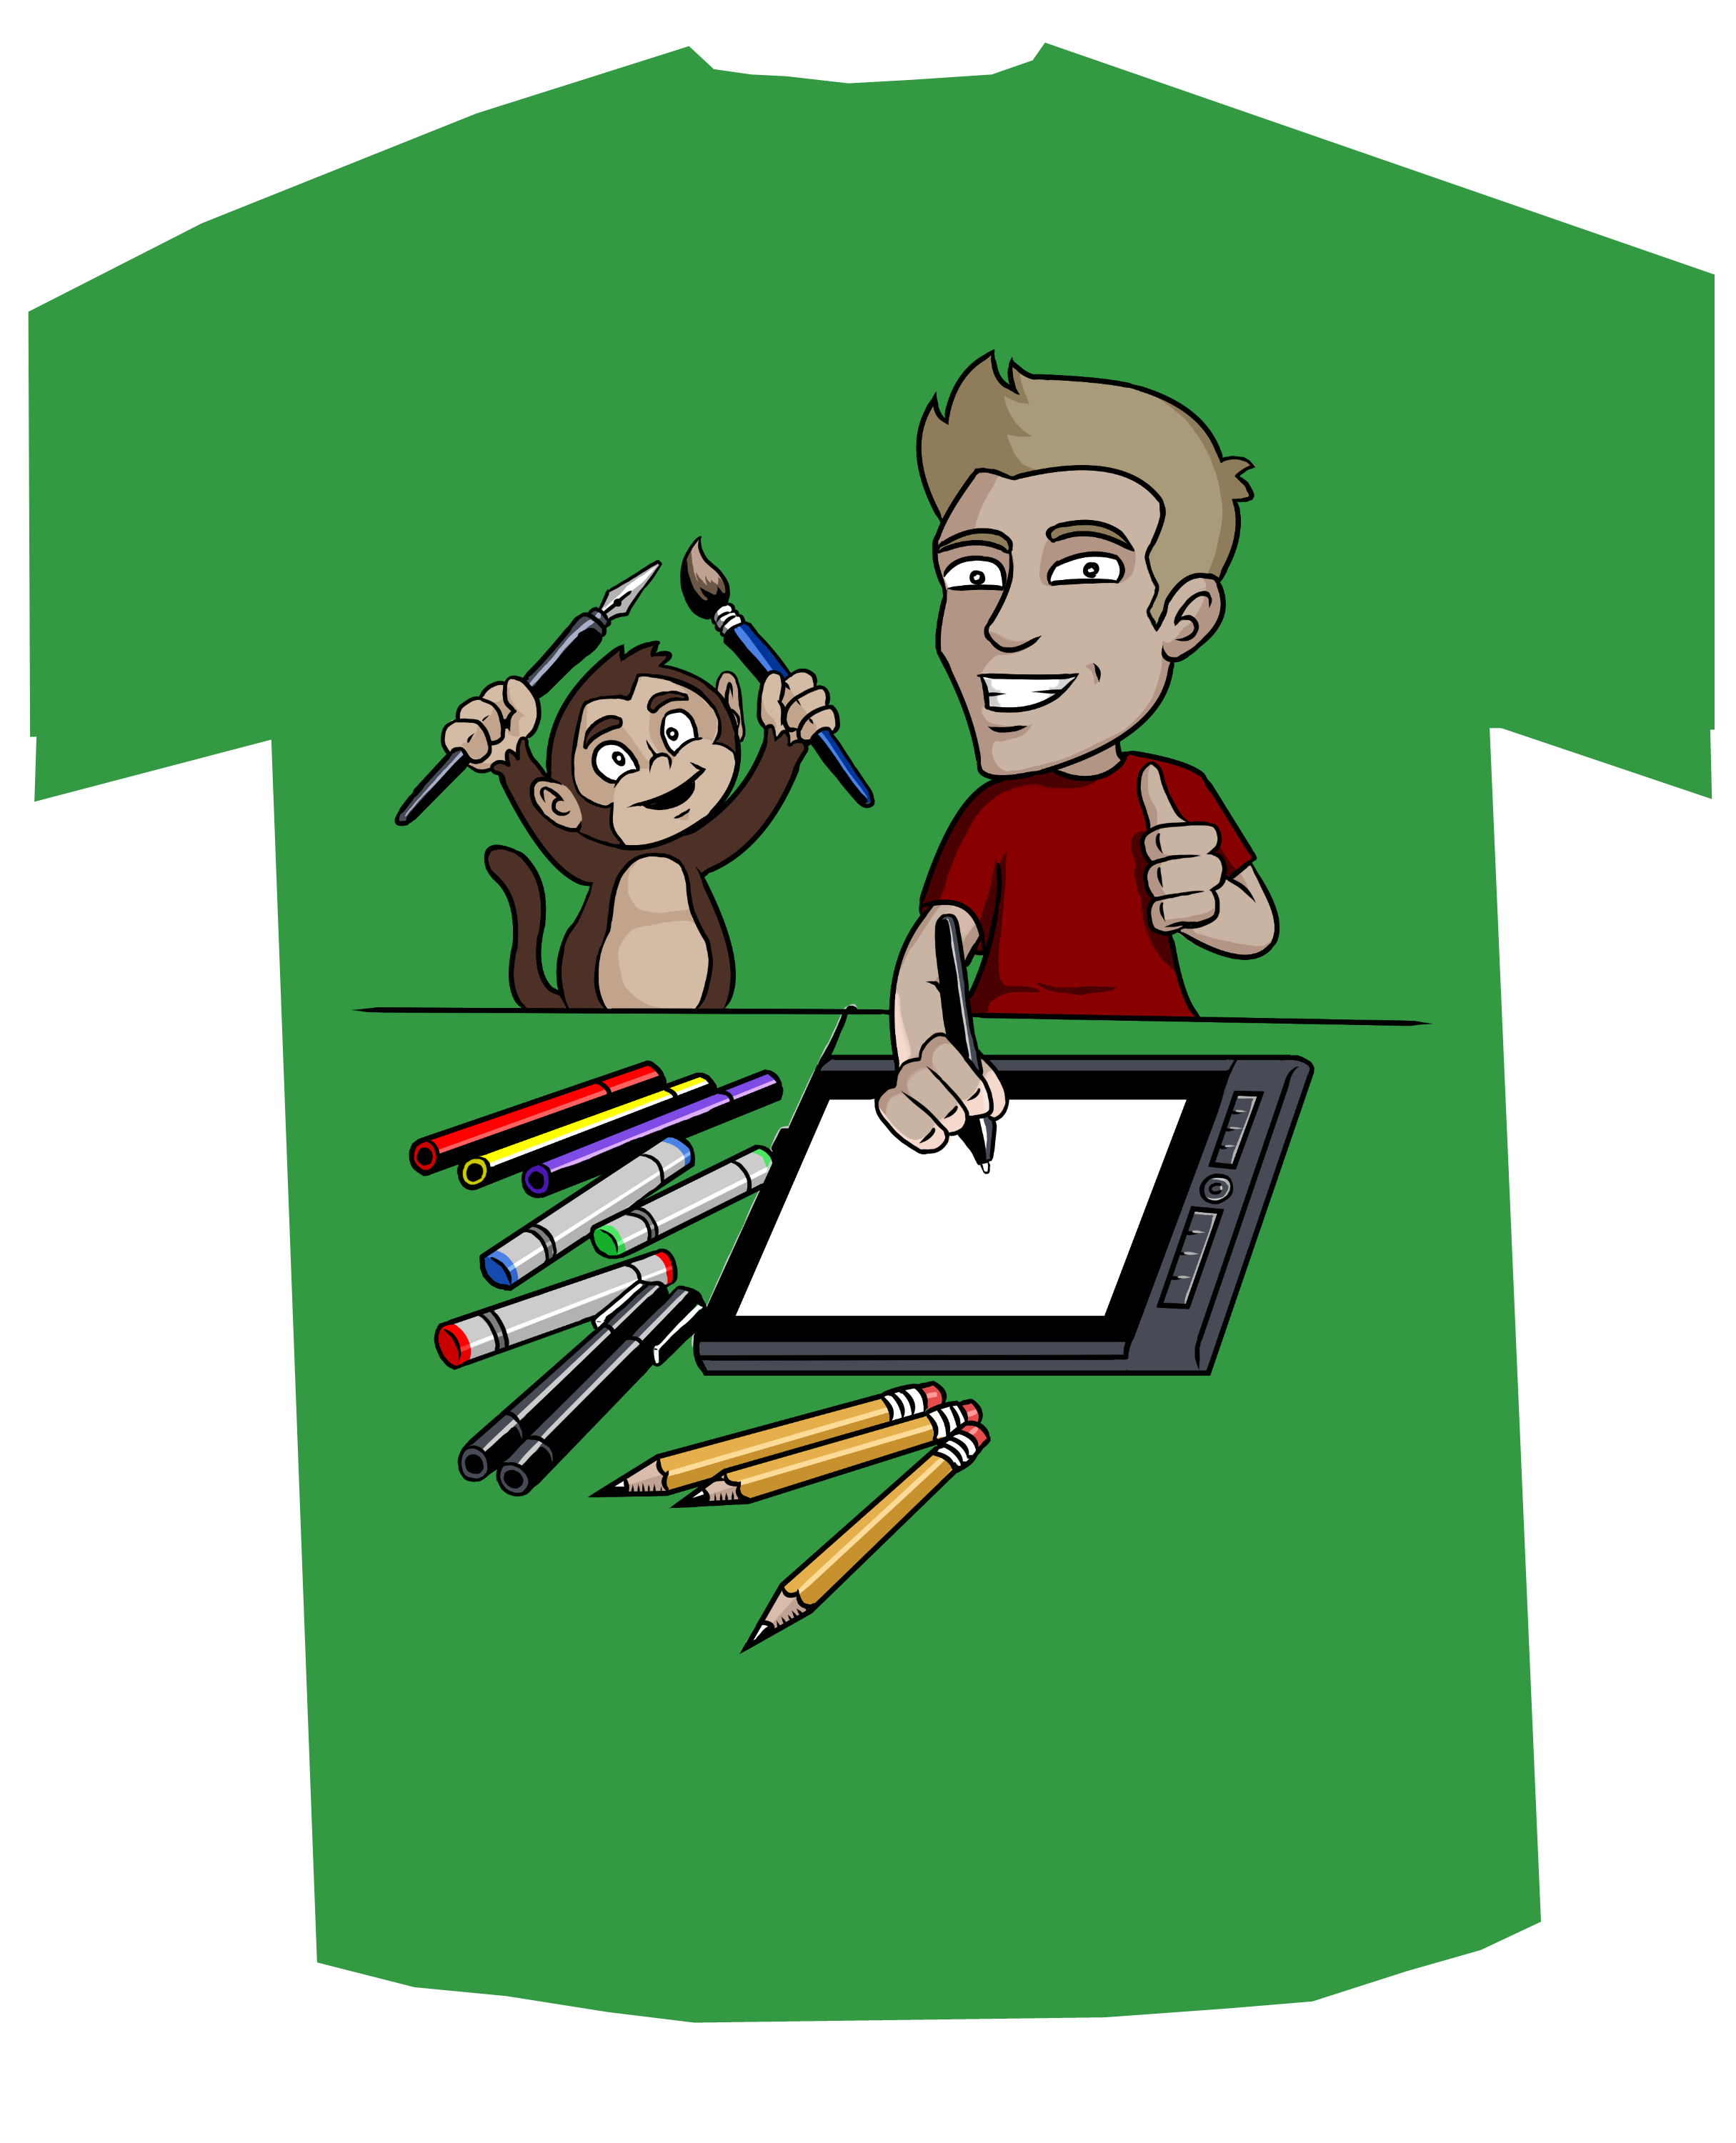 Let's Draw t-shirt